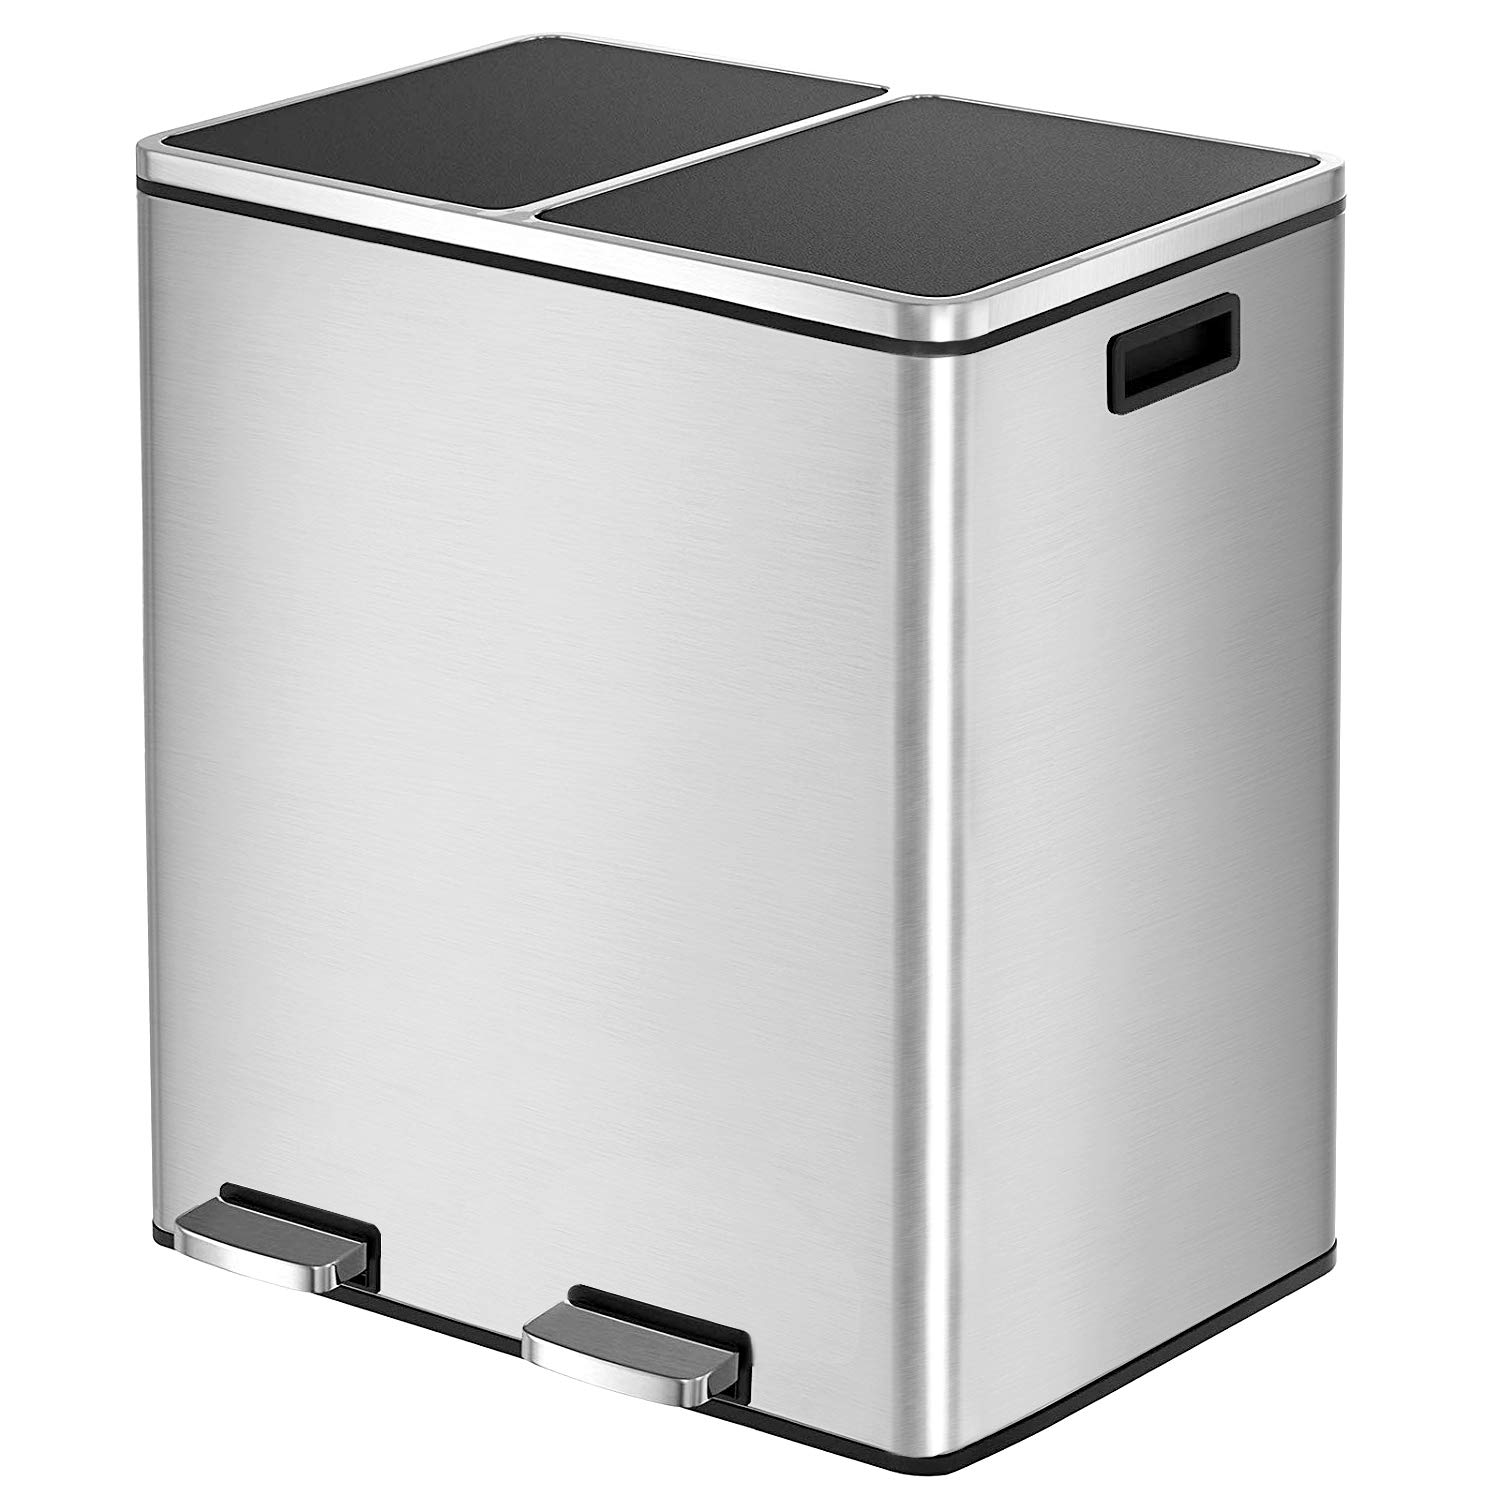 HEMBOR Dual Trash Can, 16 Gallon (2X30L) Step Rubbish Bin, Stainless Steel Double Compartment Classified Recycle Garbage Pedal Dustbin, Suit for Bathroom Kitchen Office Home, Indoor and Outdoor